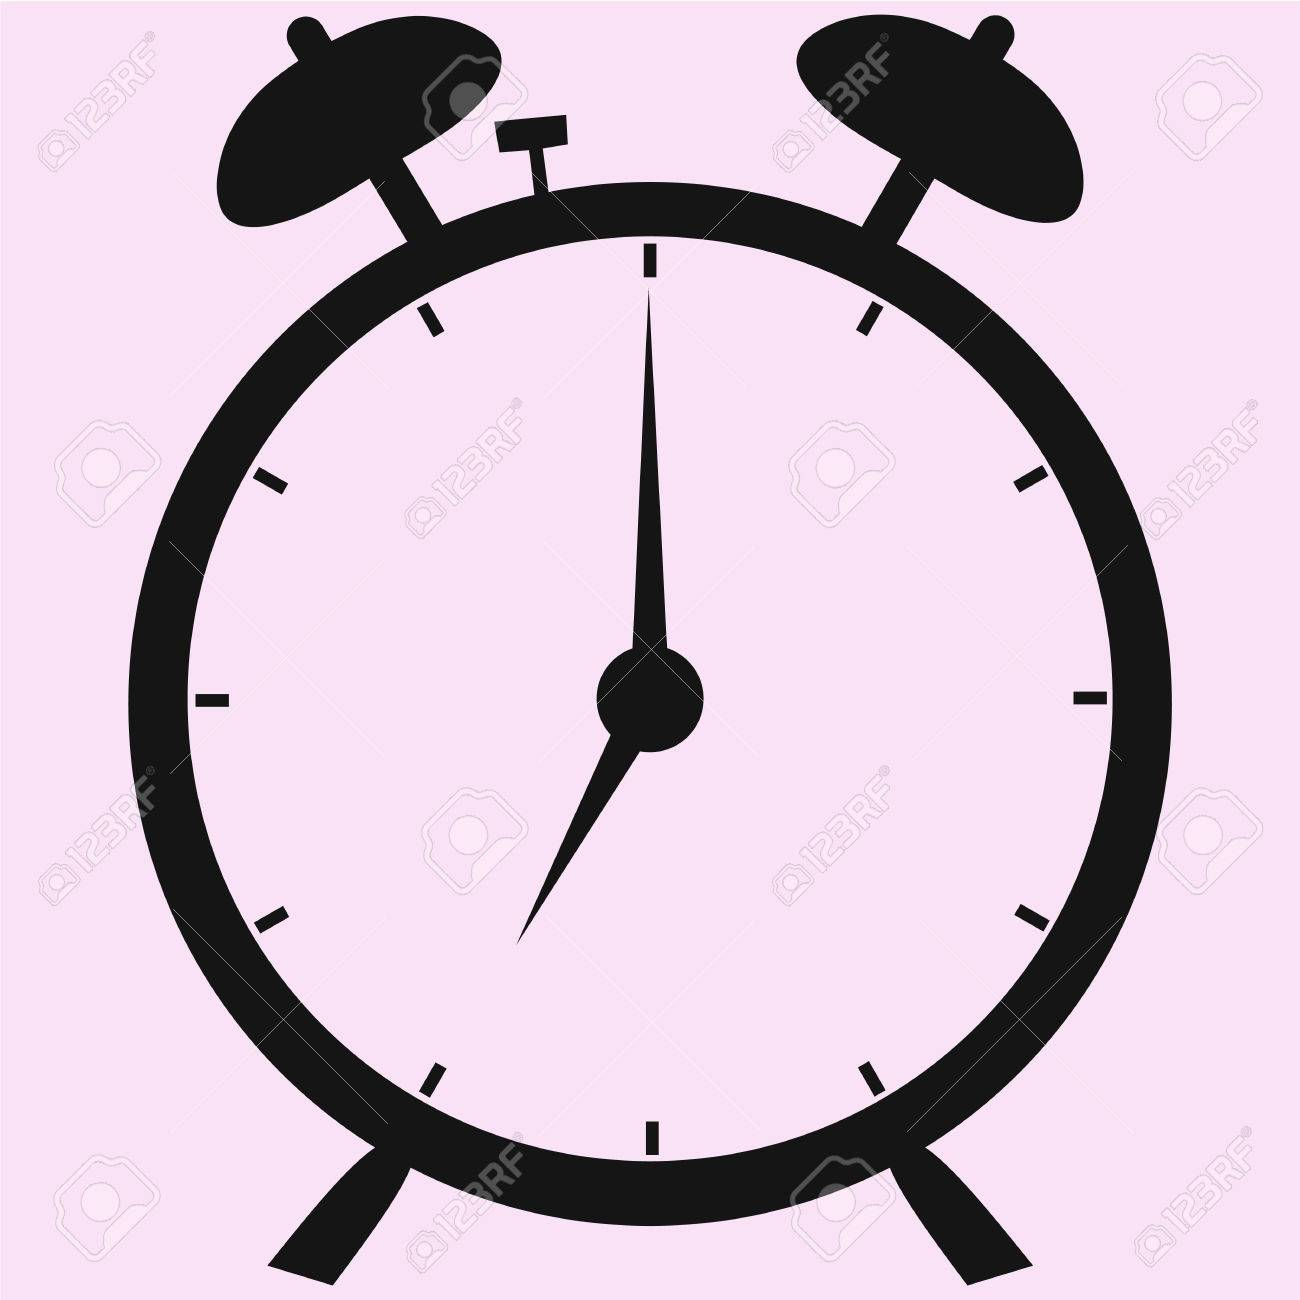 clock vector image Alarm Clock Vector Silhouette Isolated Royalty Free Cliparts ...